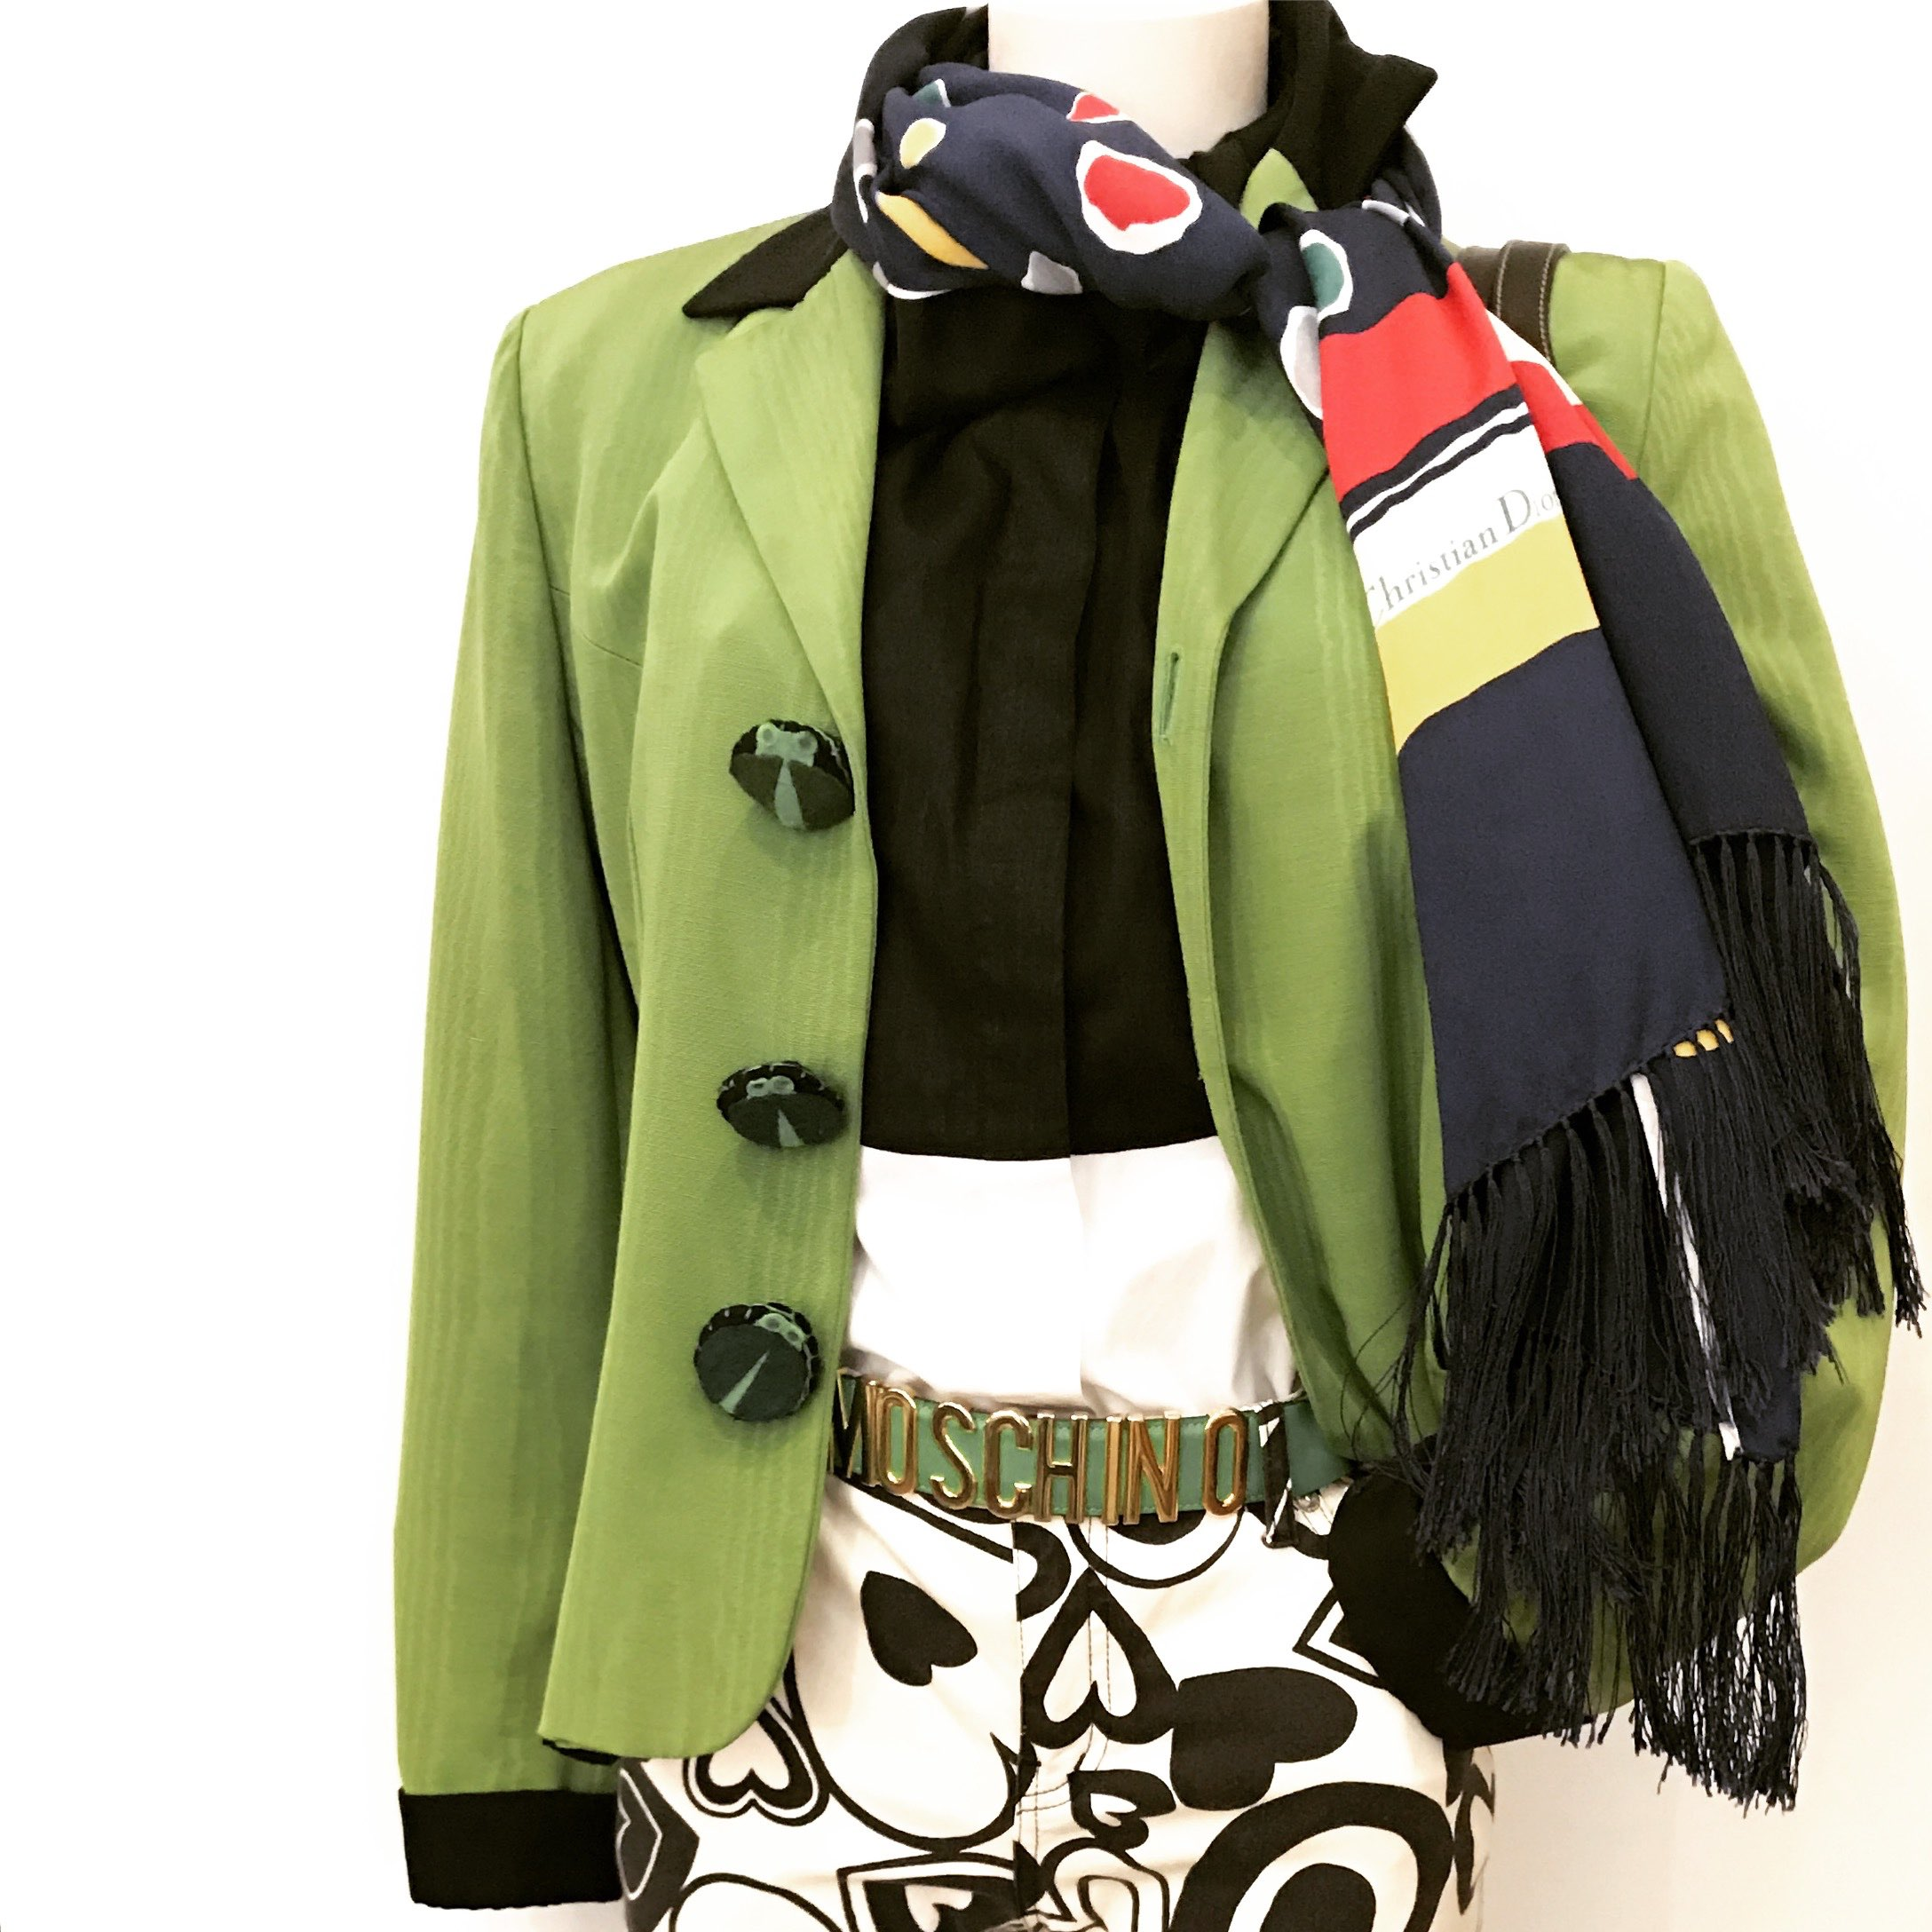 Moschino frog button jacket w Moschino trousers and Belt